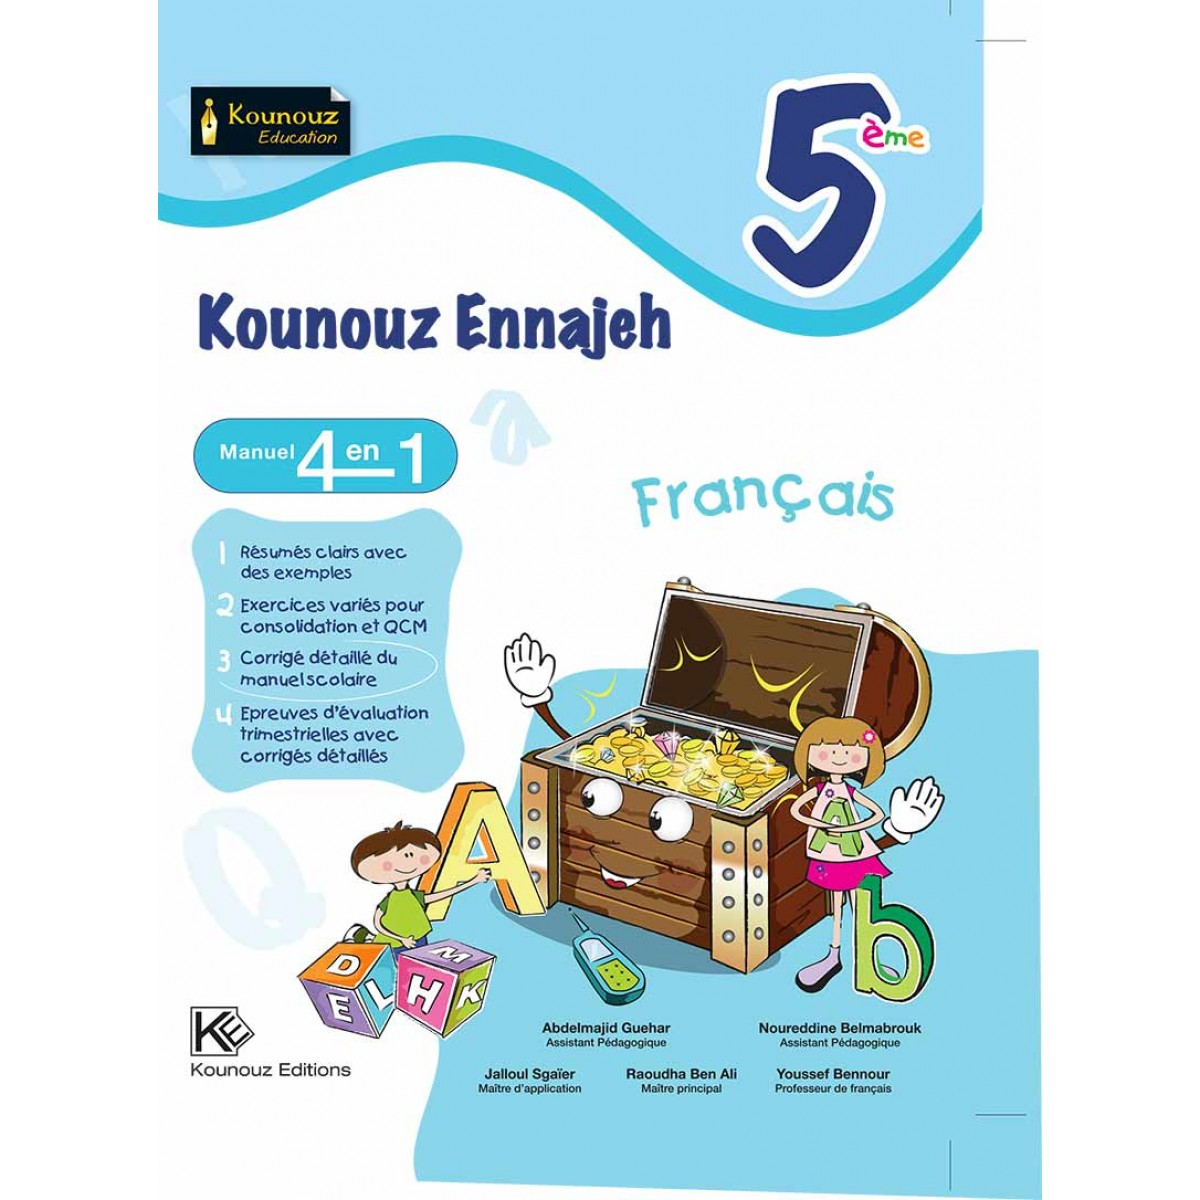 Francais 5eme Annee De Base Kounouz Education Products